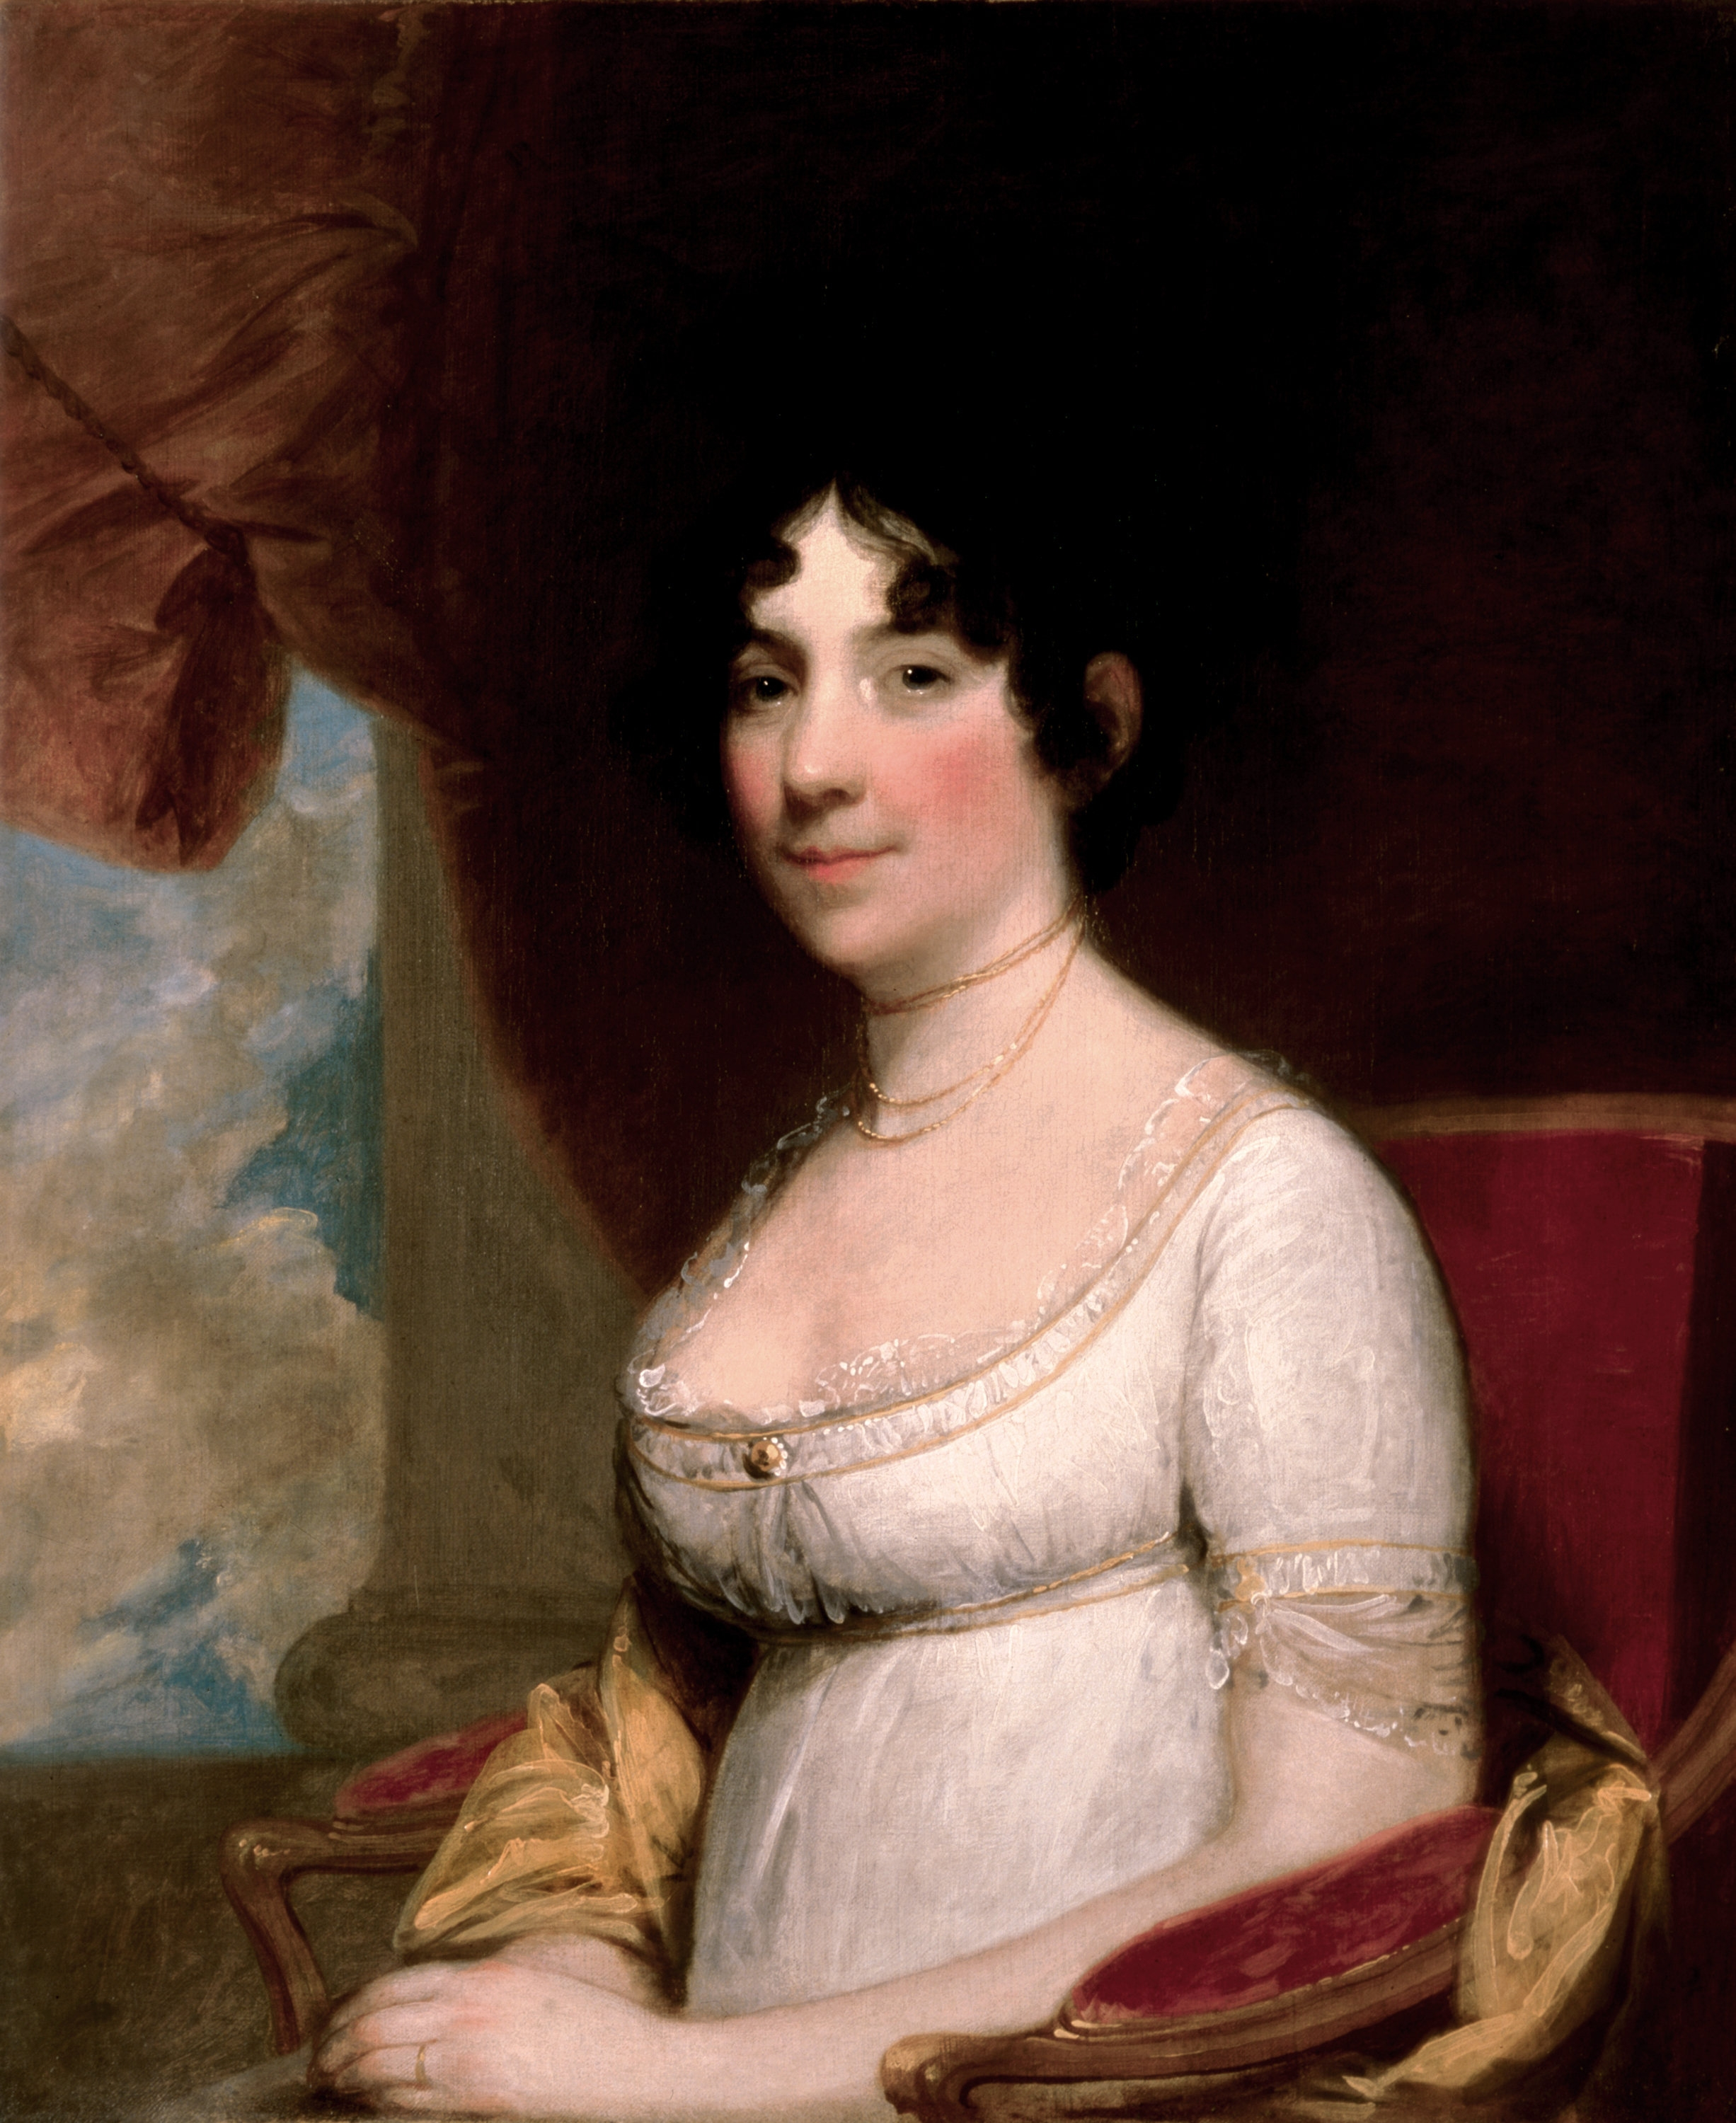 [4.1] Gilbert Stuart, Dolley Maddison, 1804. Wikicommons